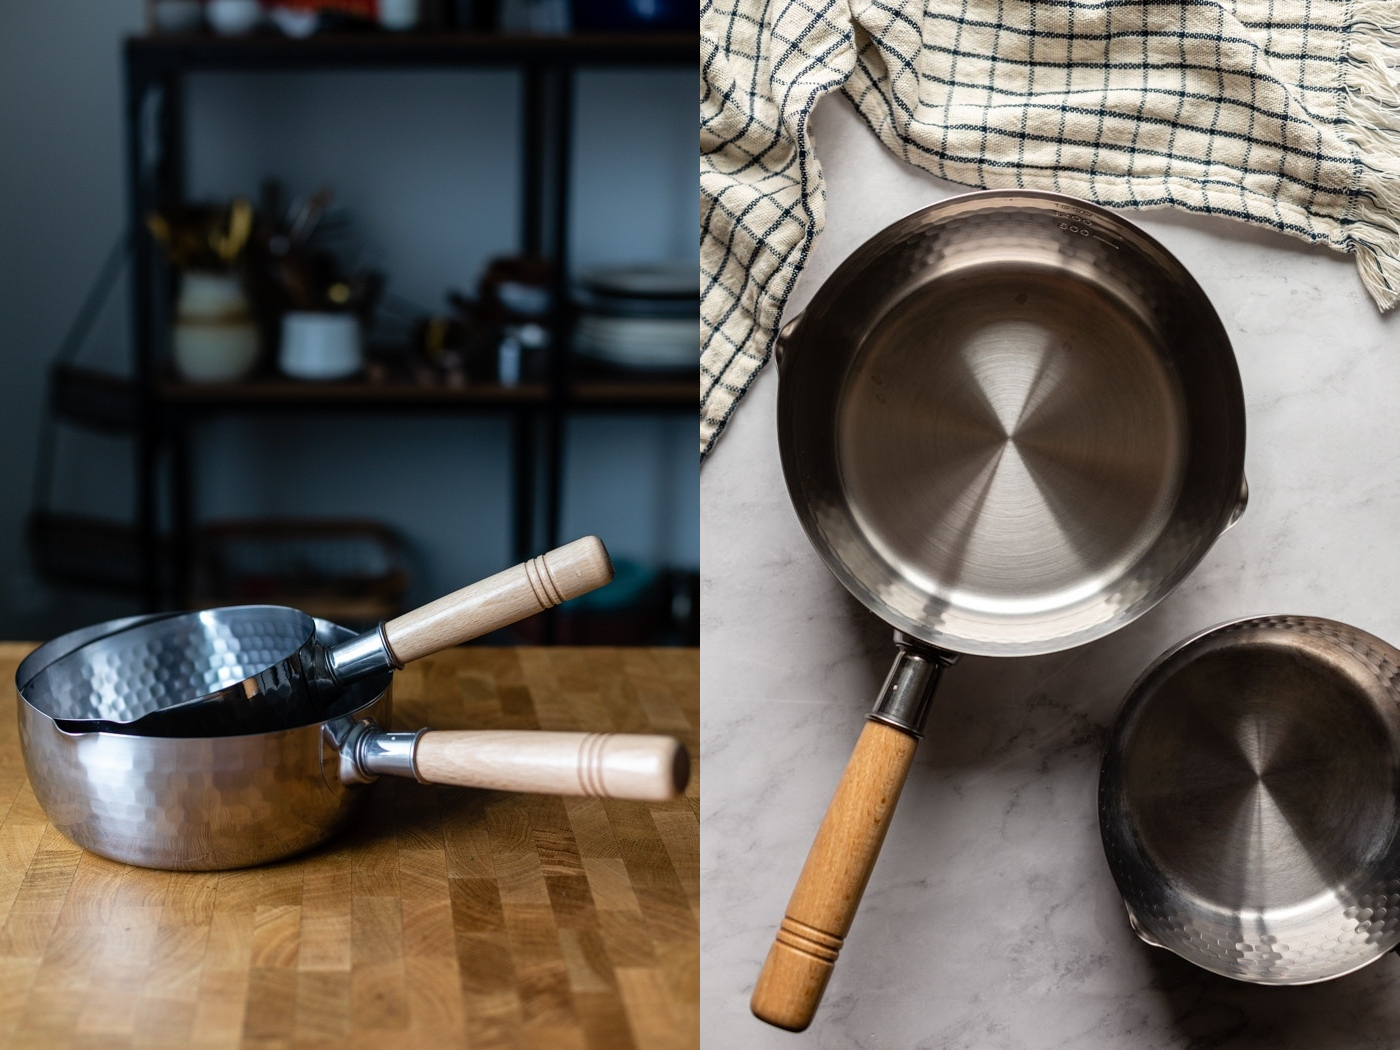 side by side images of different angles of silver pots with wooden handles